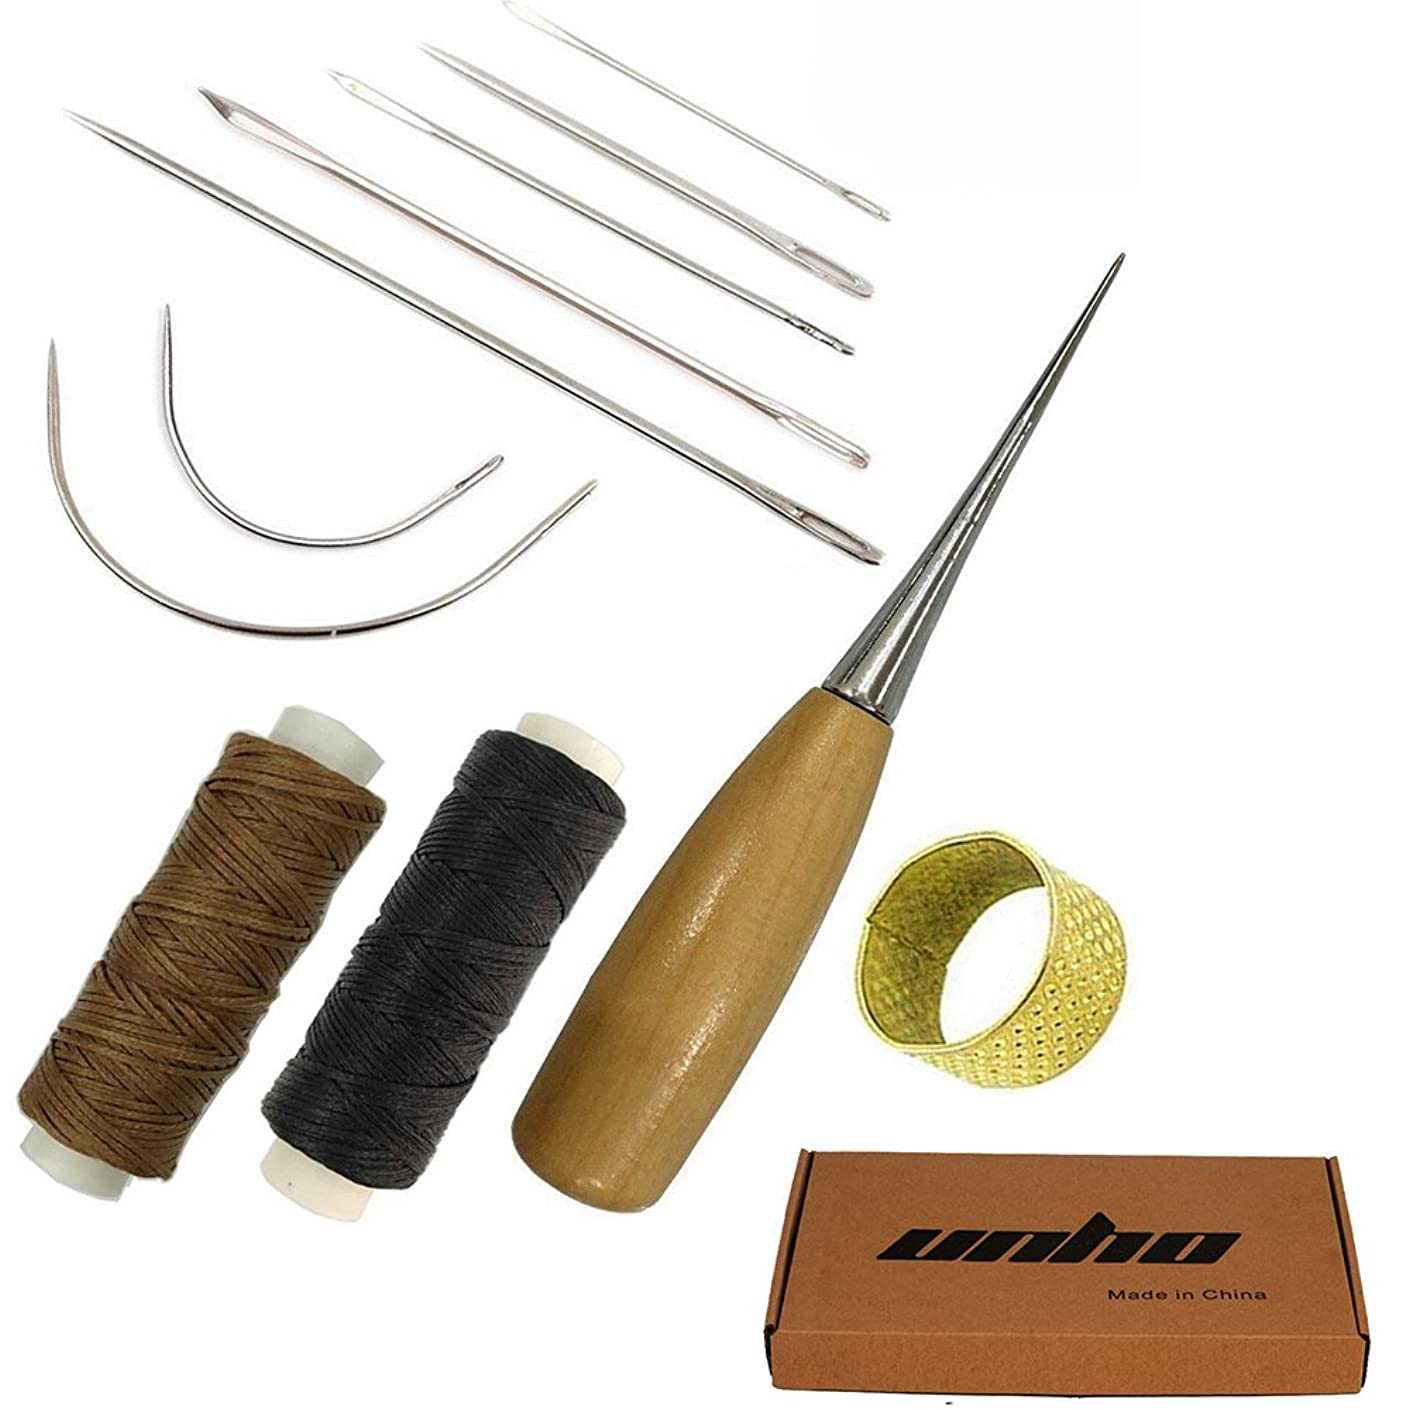 11PCs Curved Straight Sewing Needles with Leather Waxed Thread Cord 1xBrown 1xBlack and Drilling Awl and Thimble for Lea